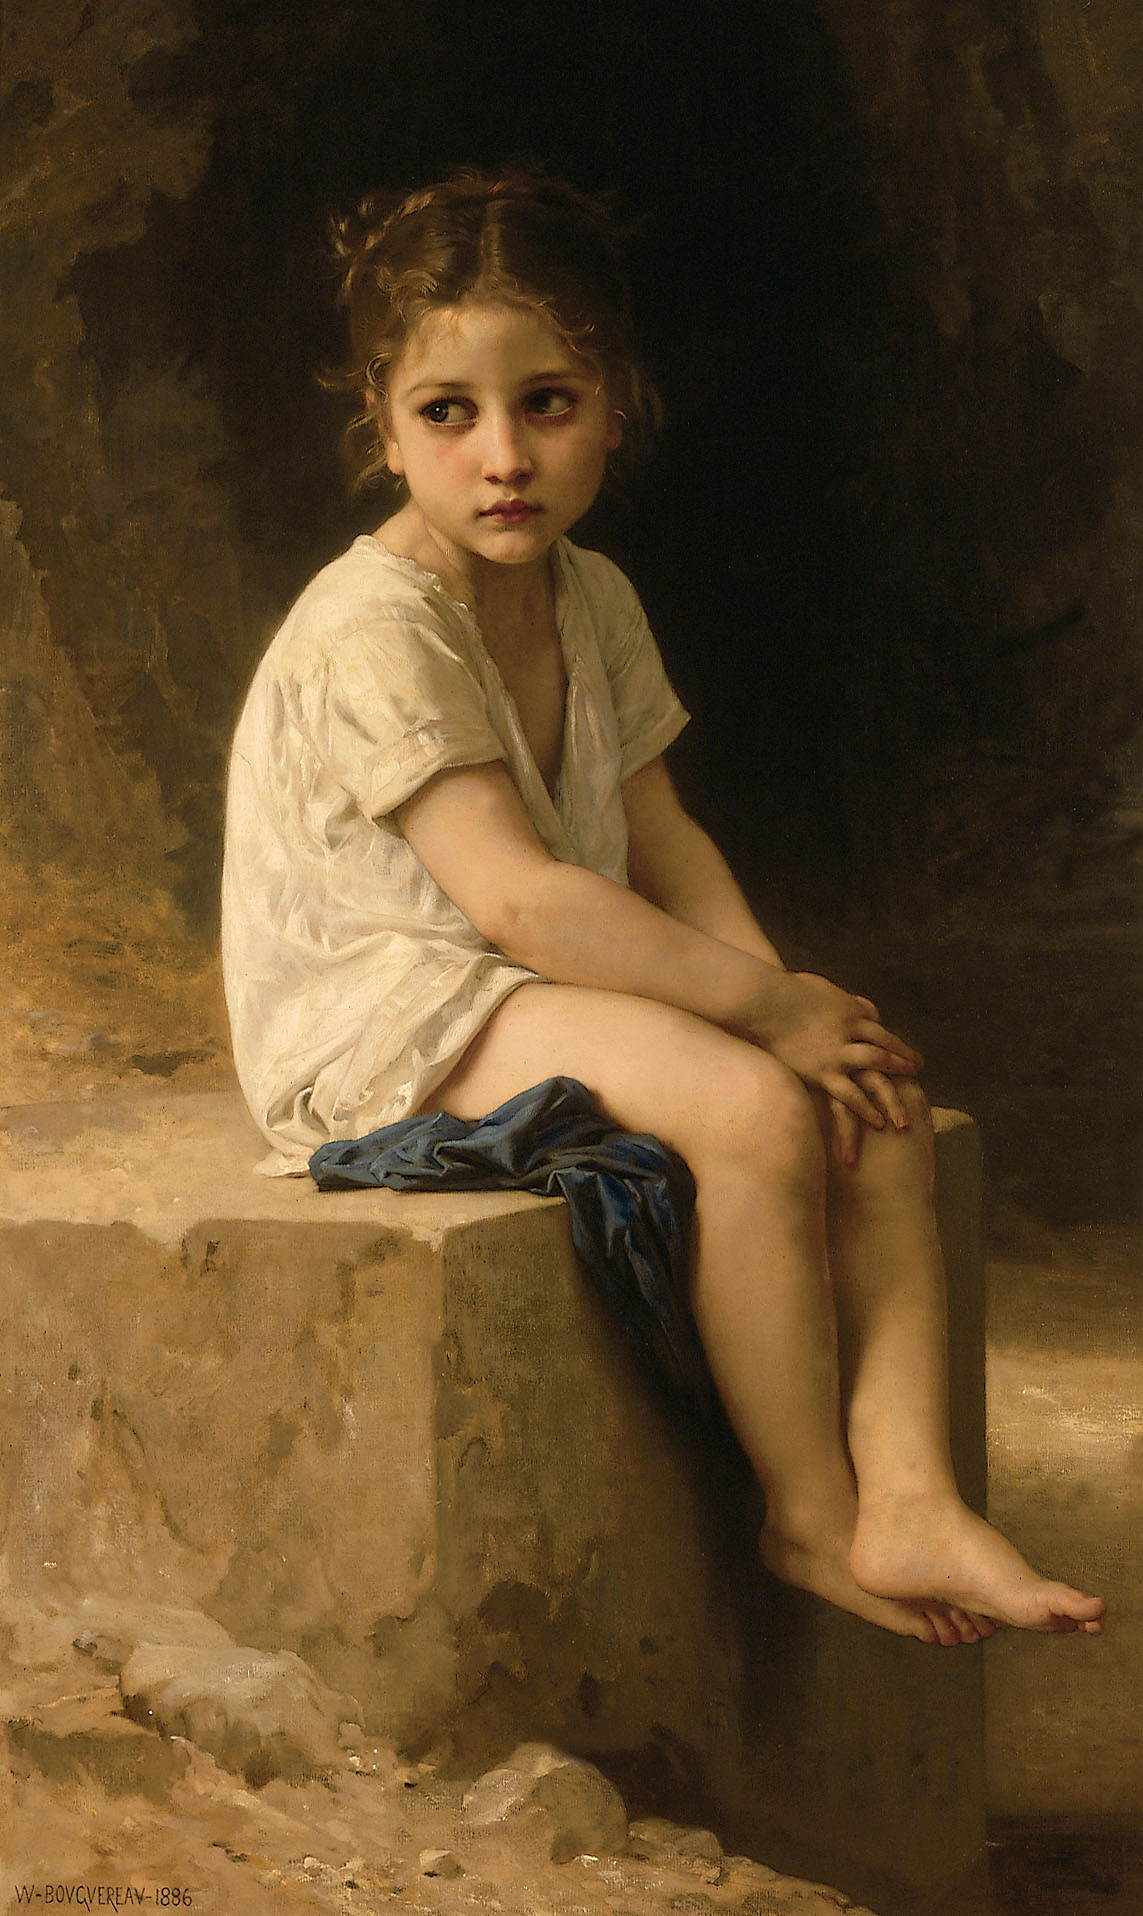 William-Adolphe Bouguereau - Au pied de la falaise